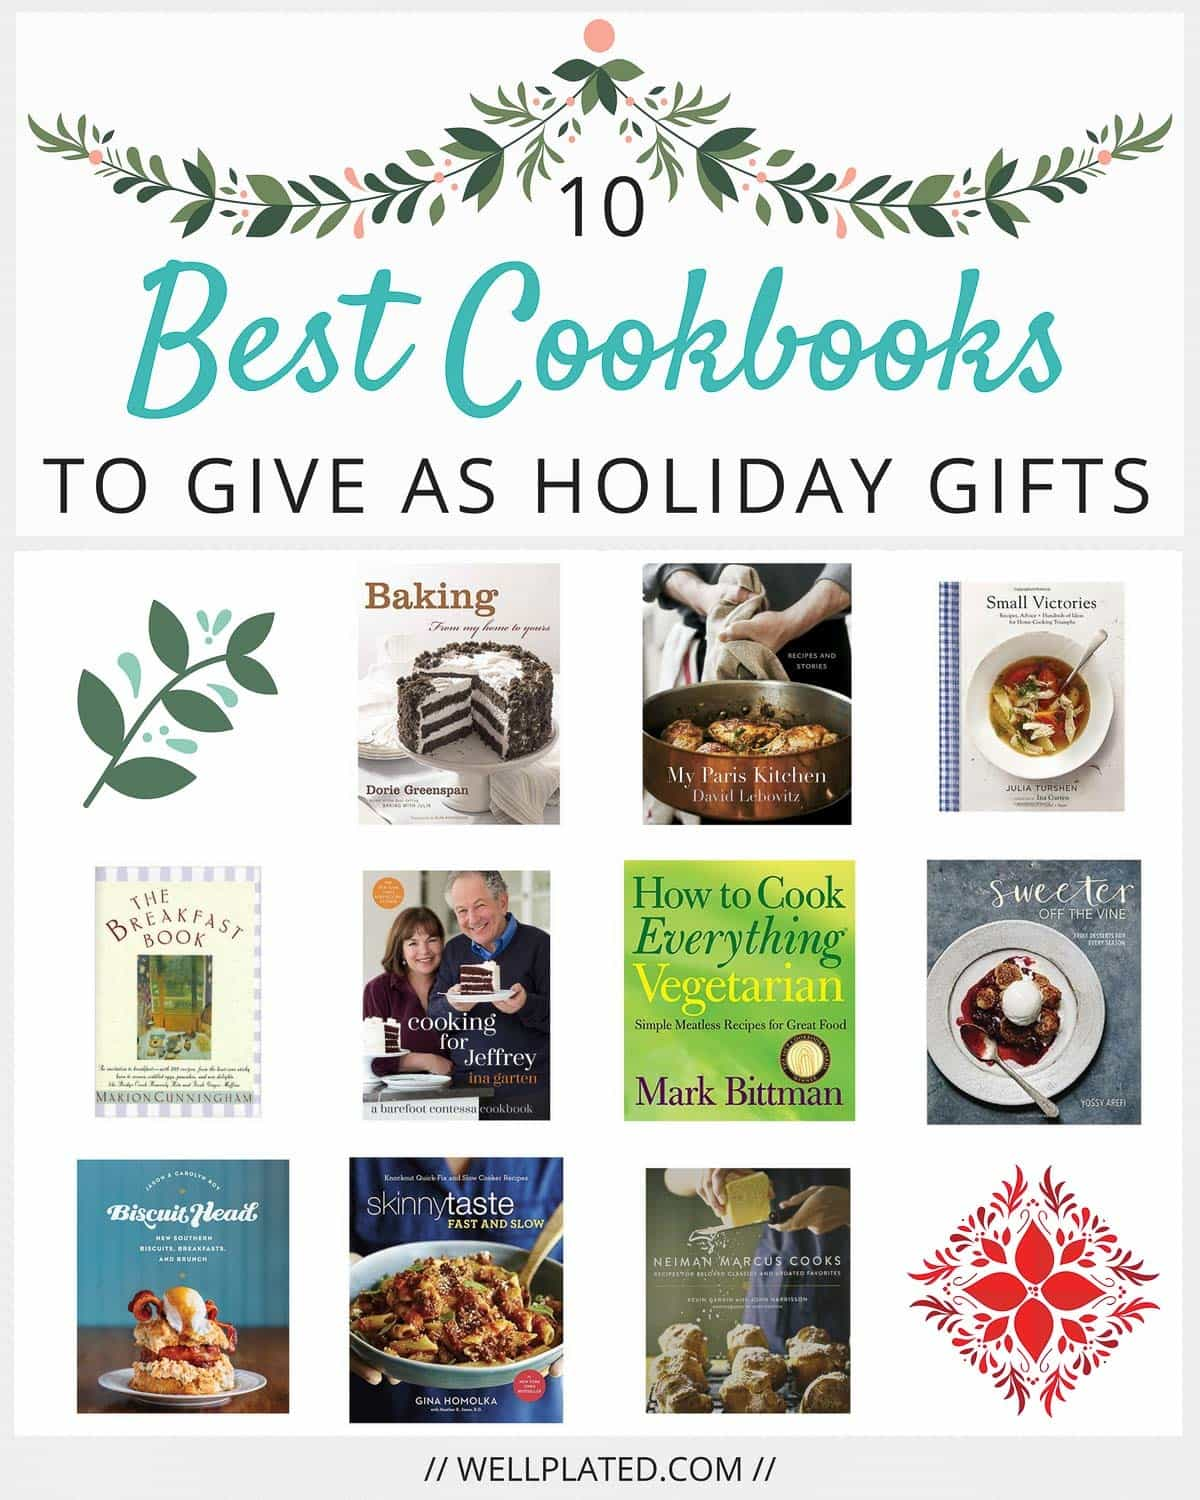 10 Best Cookbooks to Give as Holiday Gifts